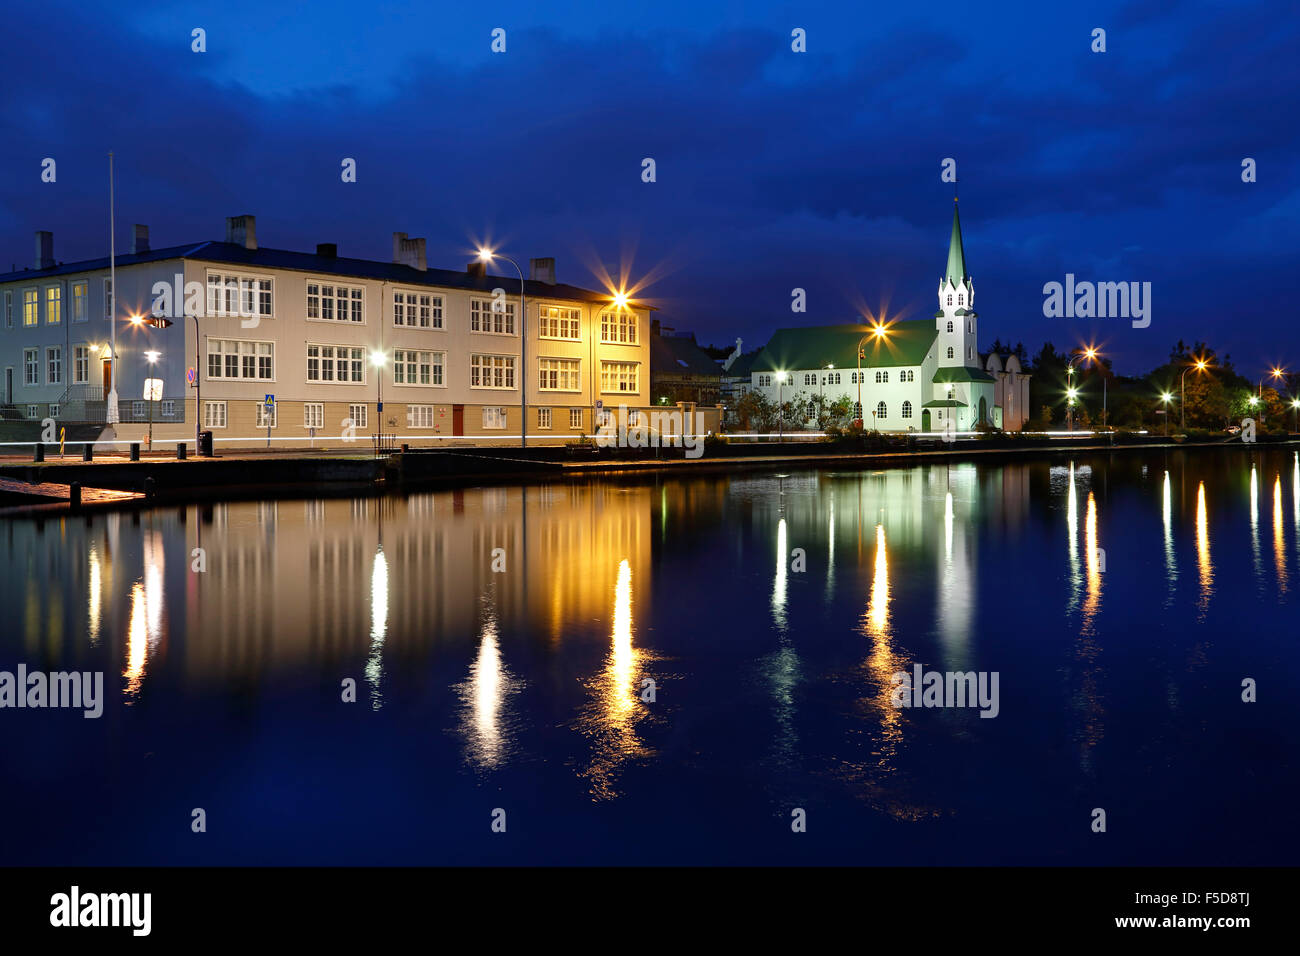 Buildings reflected on Tjorning Pond (Frikirjan Church on right), Reykjavik, Iceland - Stock Image